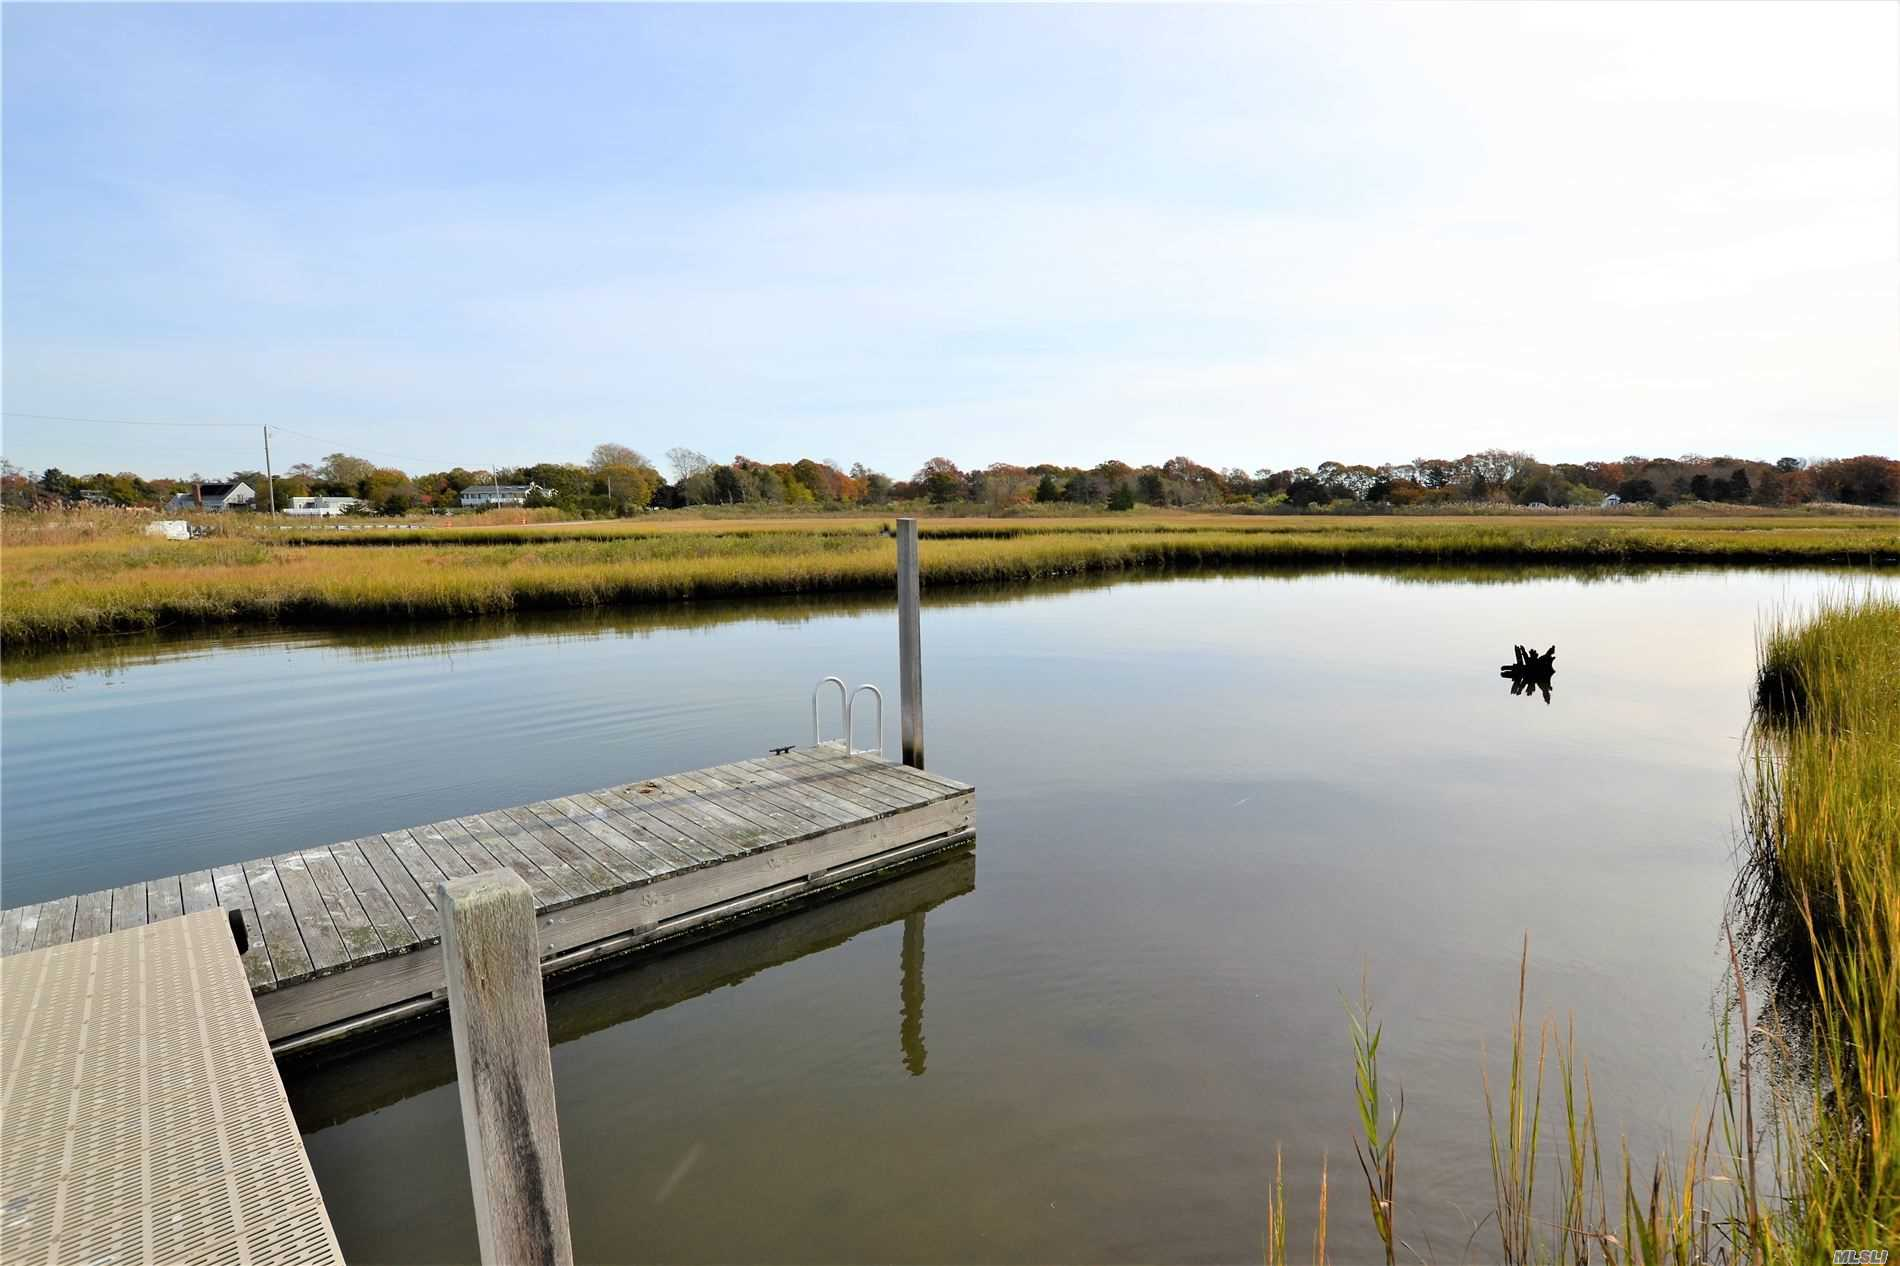 Your private waterfront estate awaits to make it your own. 2.3 acres of waterfront property on the canal w/private dock. Perfect for kayaking or paddle boarding. Potential water views with clearing. Cathedral ceilings, Open Floor plan. Great Rm w/FP, EIK. Sliders to deck w/Inground heated pool w/new liner. Outdoor Shower. 3 BR/3 full ba main floor. 2nd story MB Suite w/Private deck, MB Bath w/soak jet tub, shower, bidet, his/her sinks, Dressing area. 7 skylights allow for ext. nat. light.